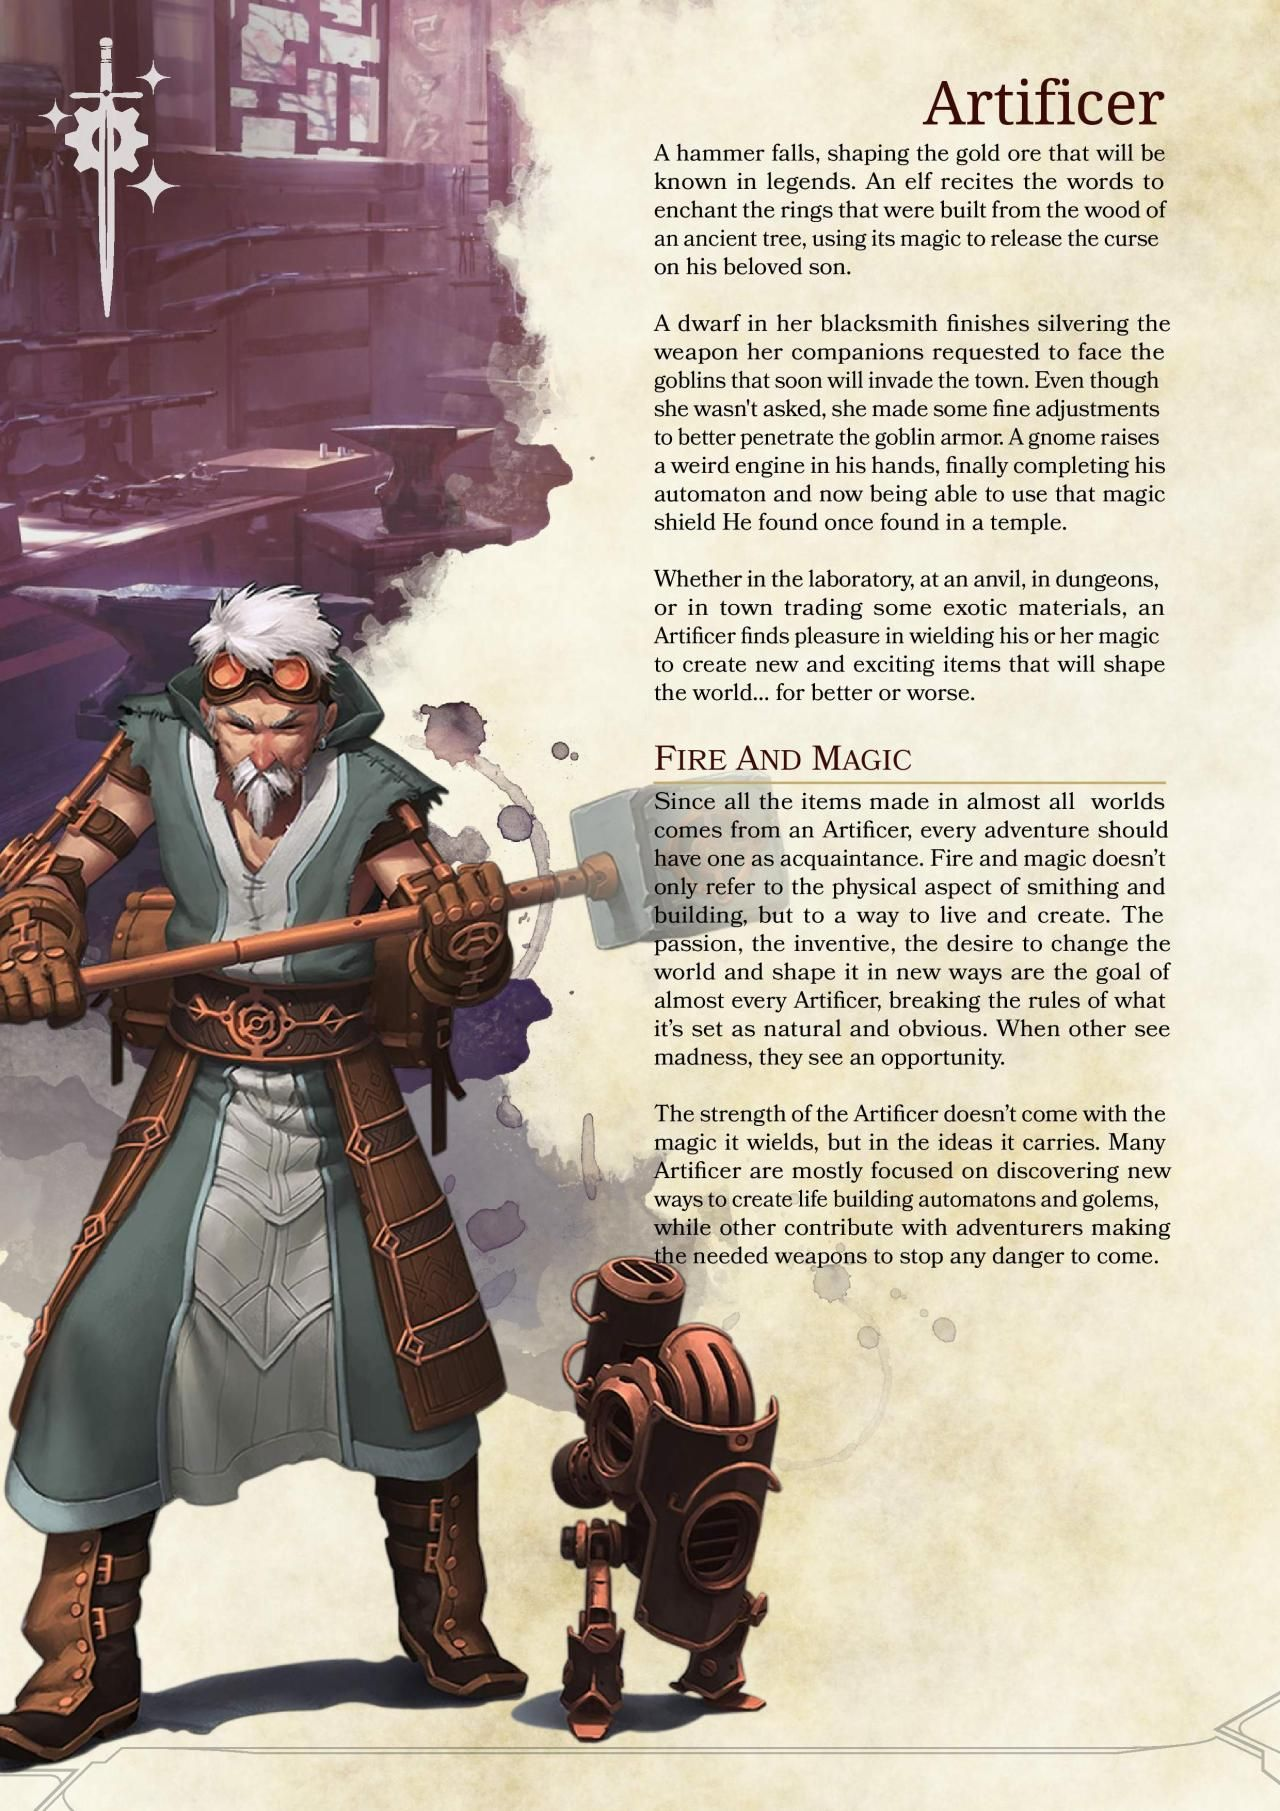 Pin by Alec Ogburn on RPG | Pinterest | Dnd 5e homebrew, RPG and Dragons